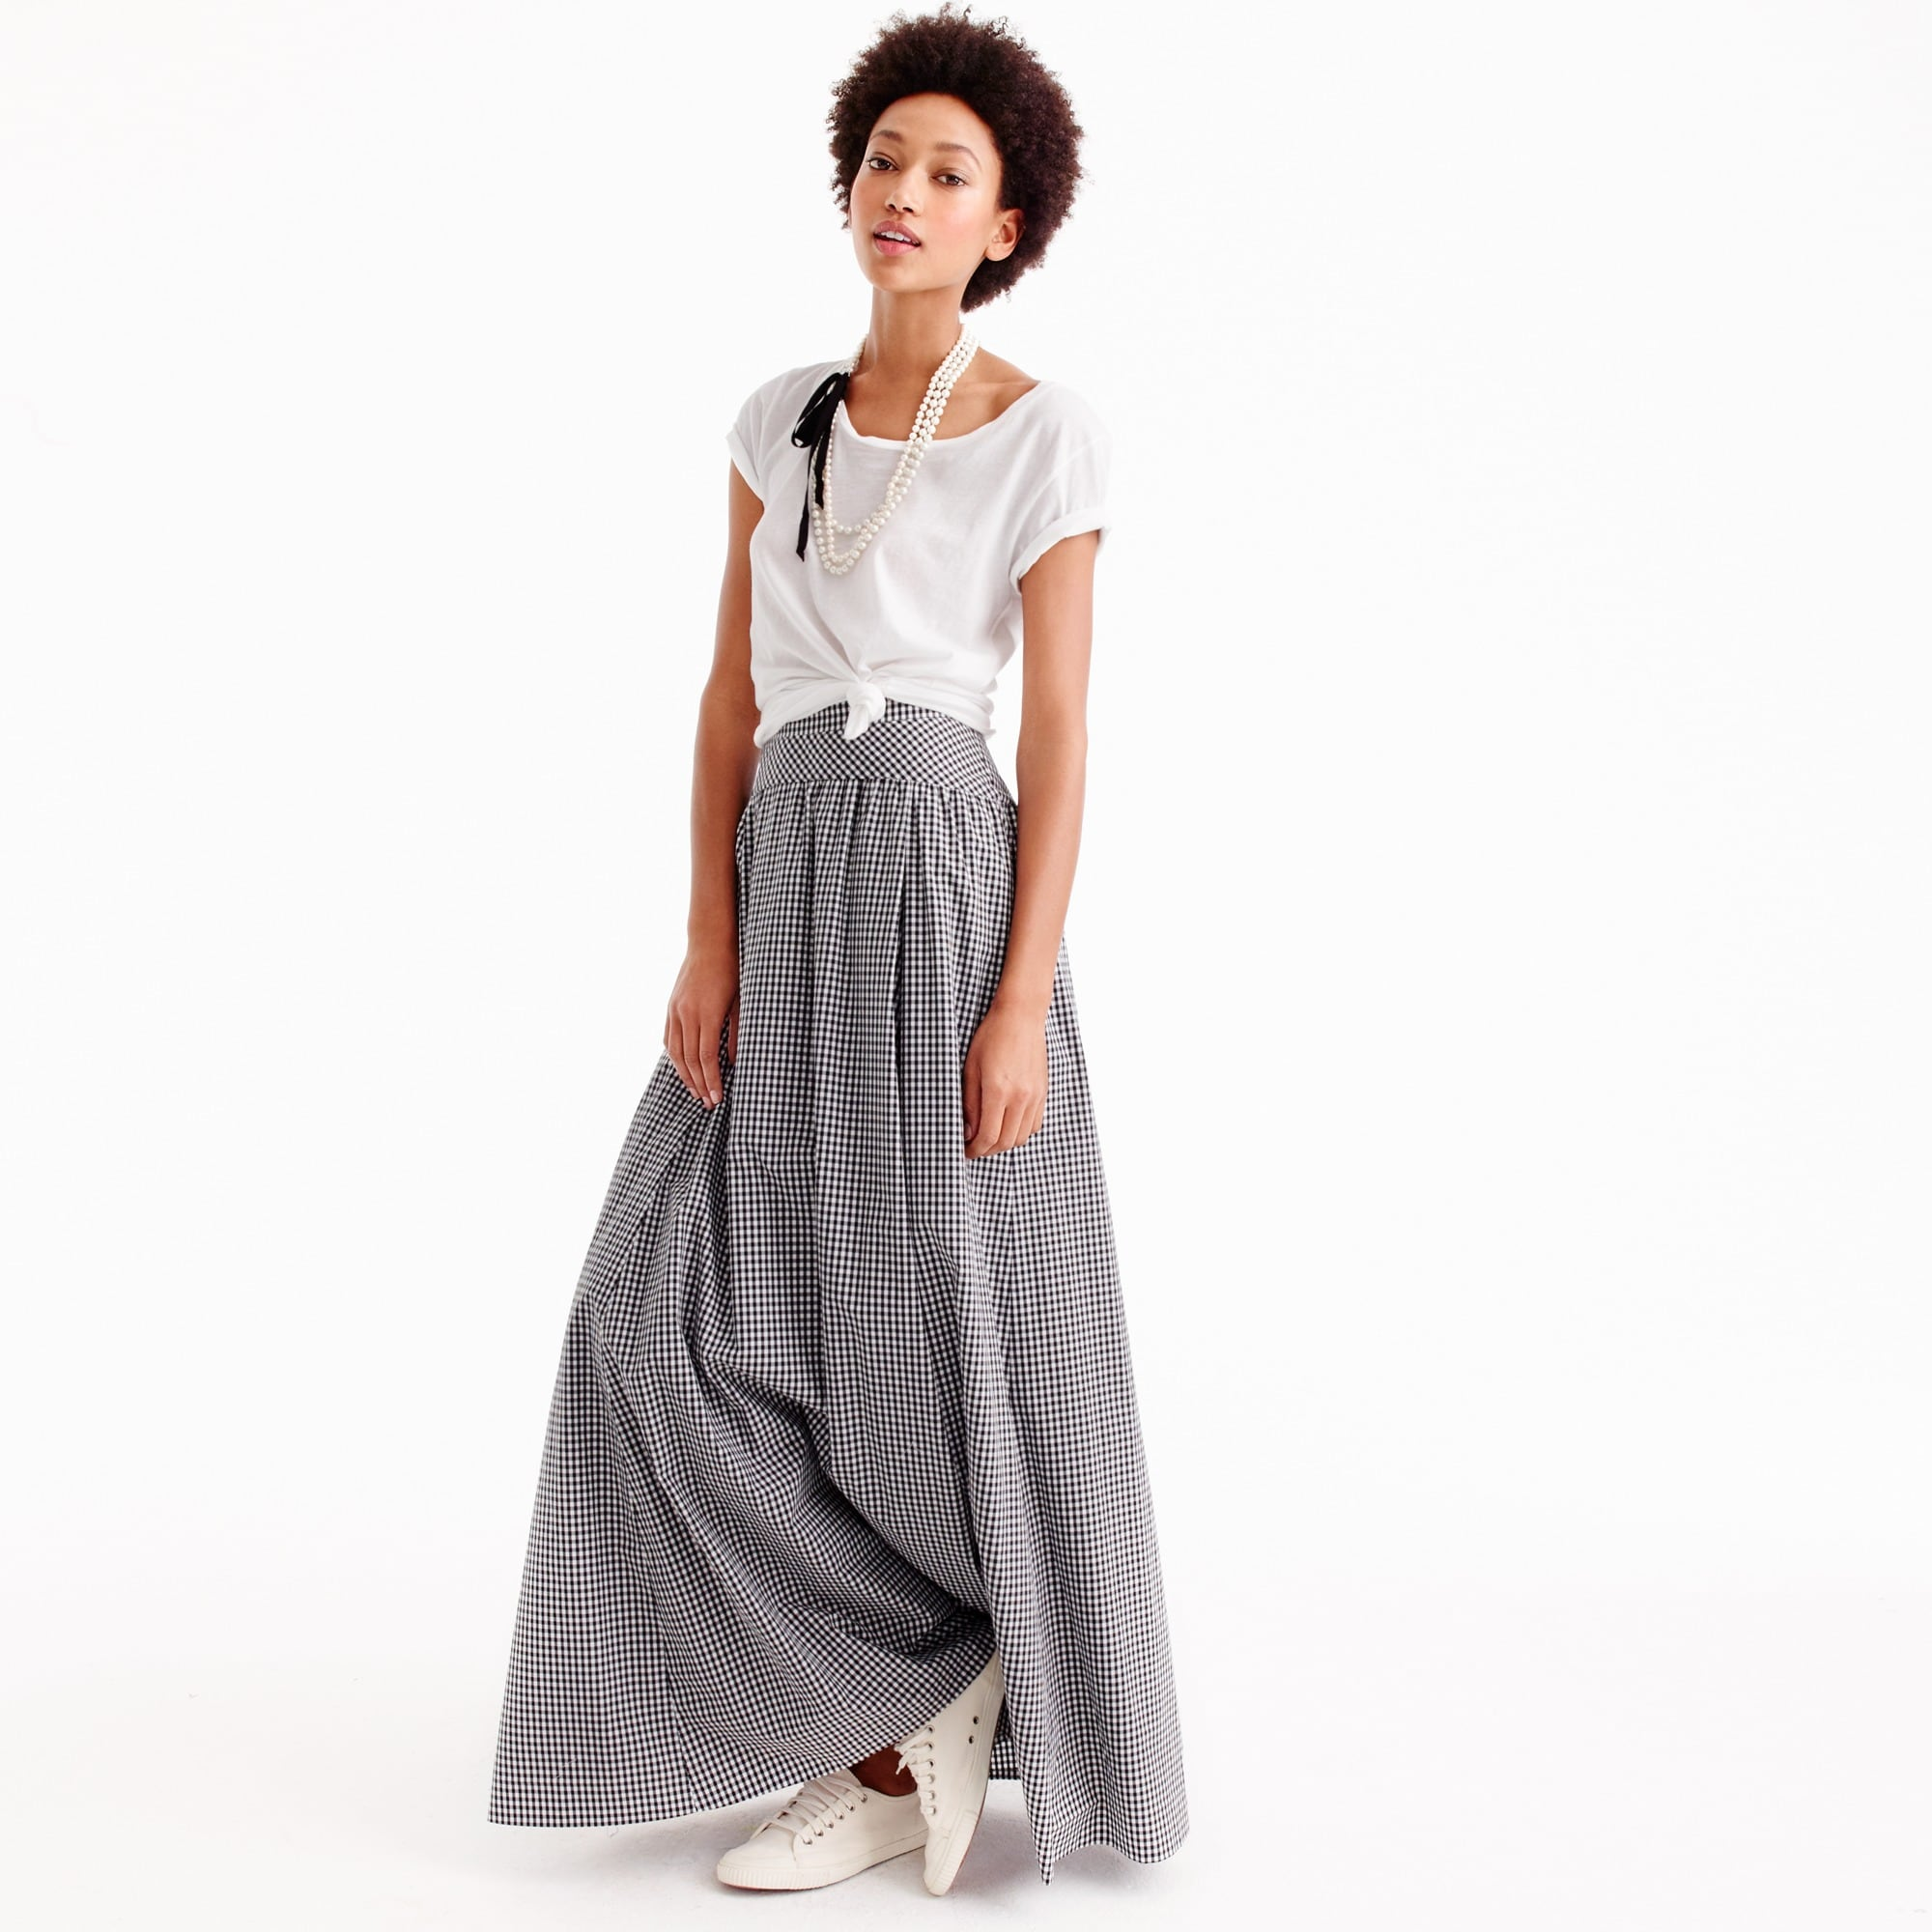 ball skirt in gingham : women maxi